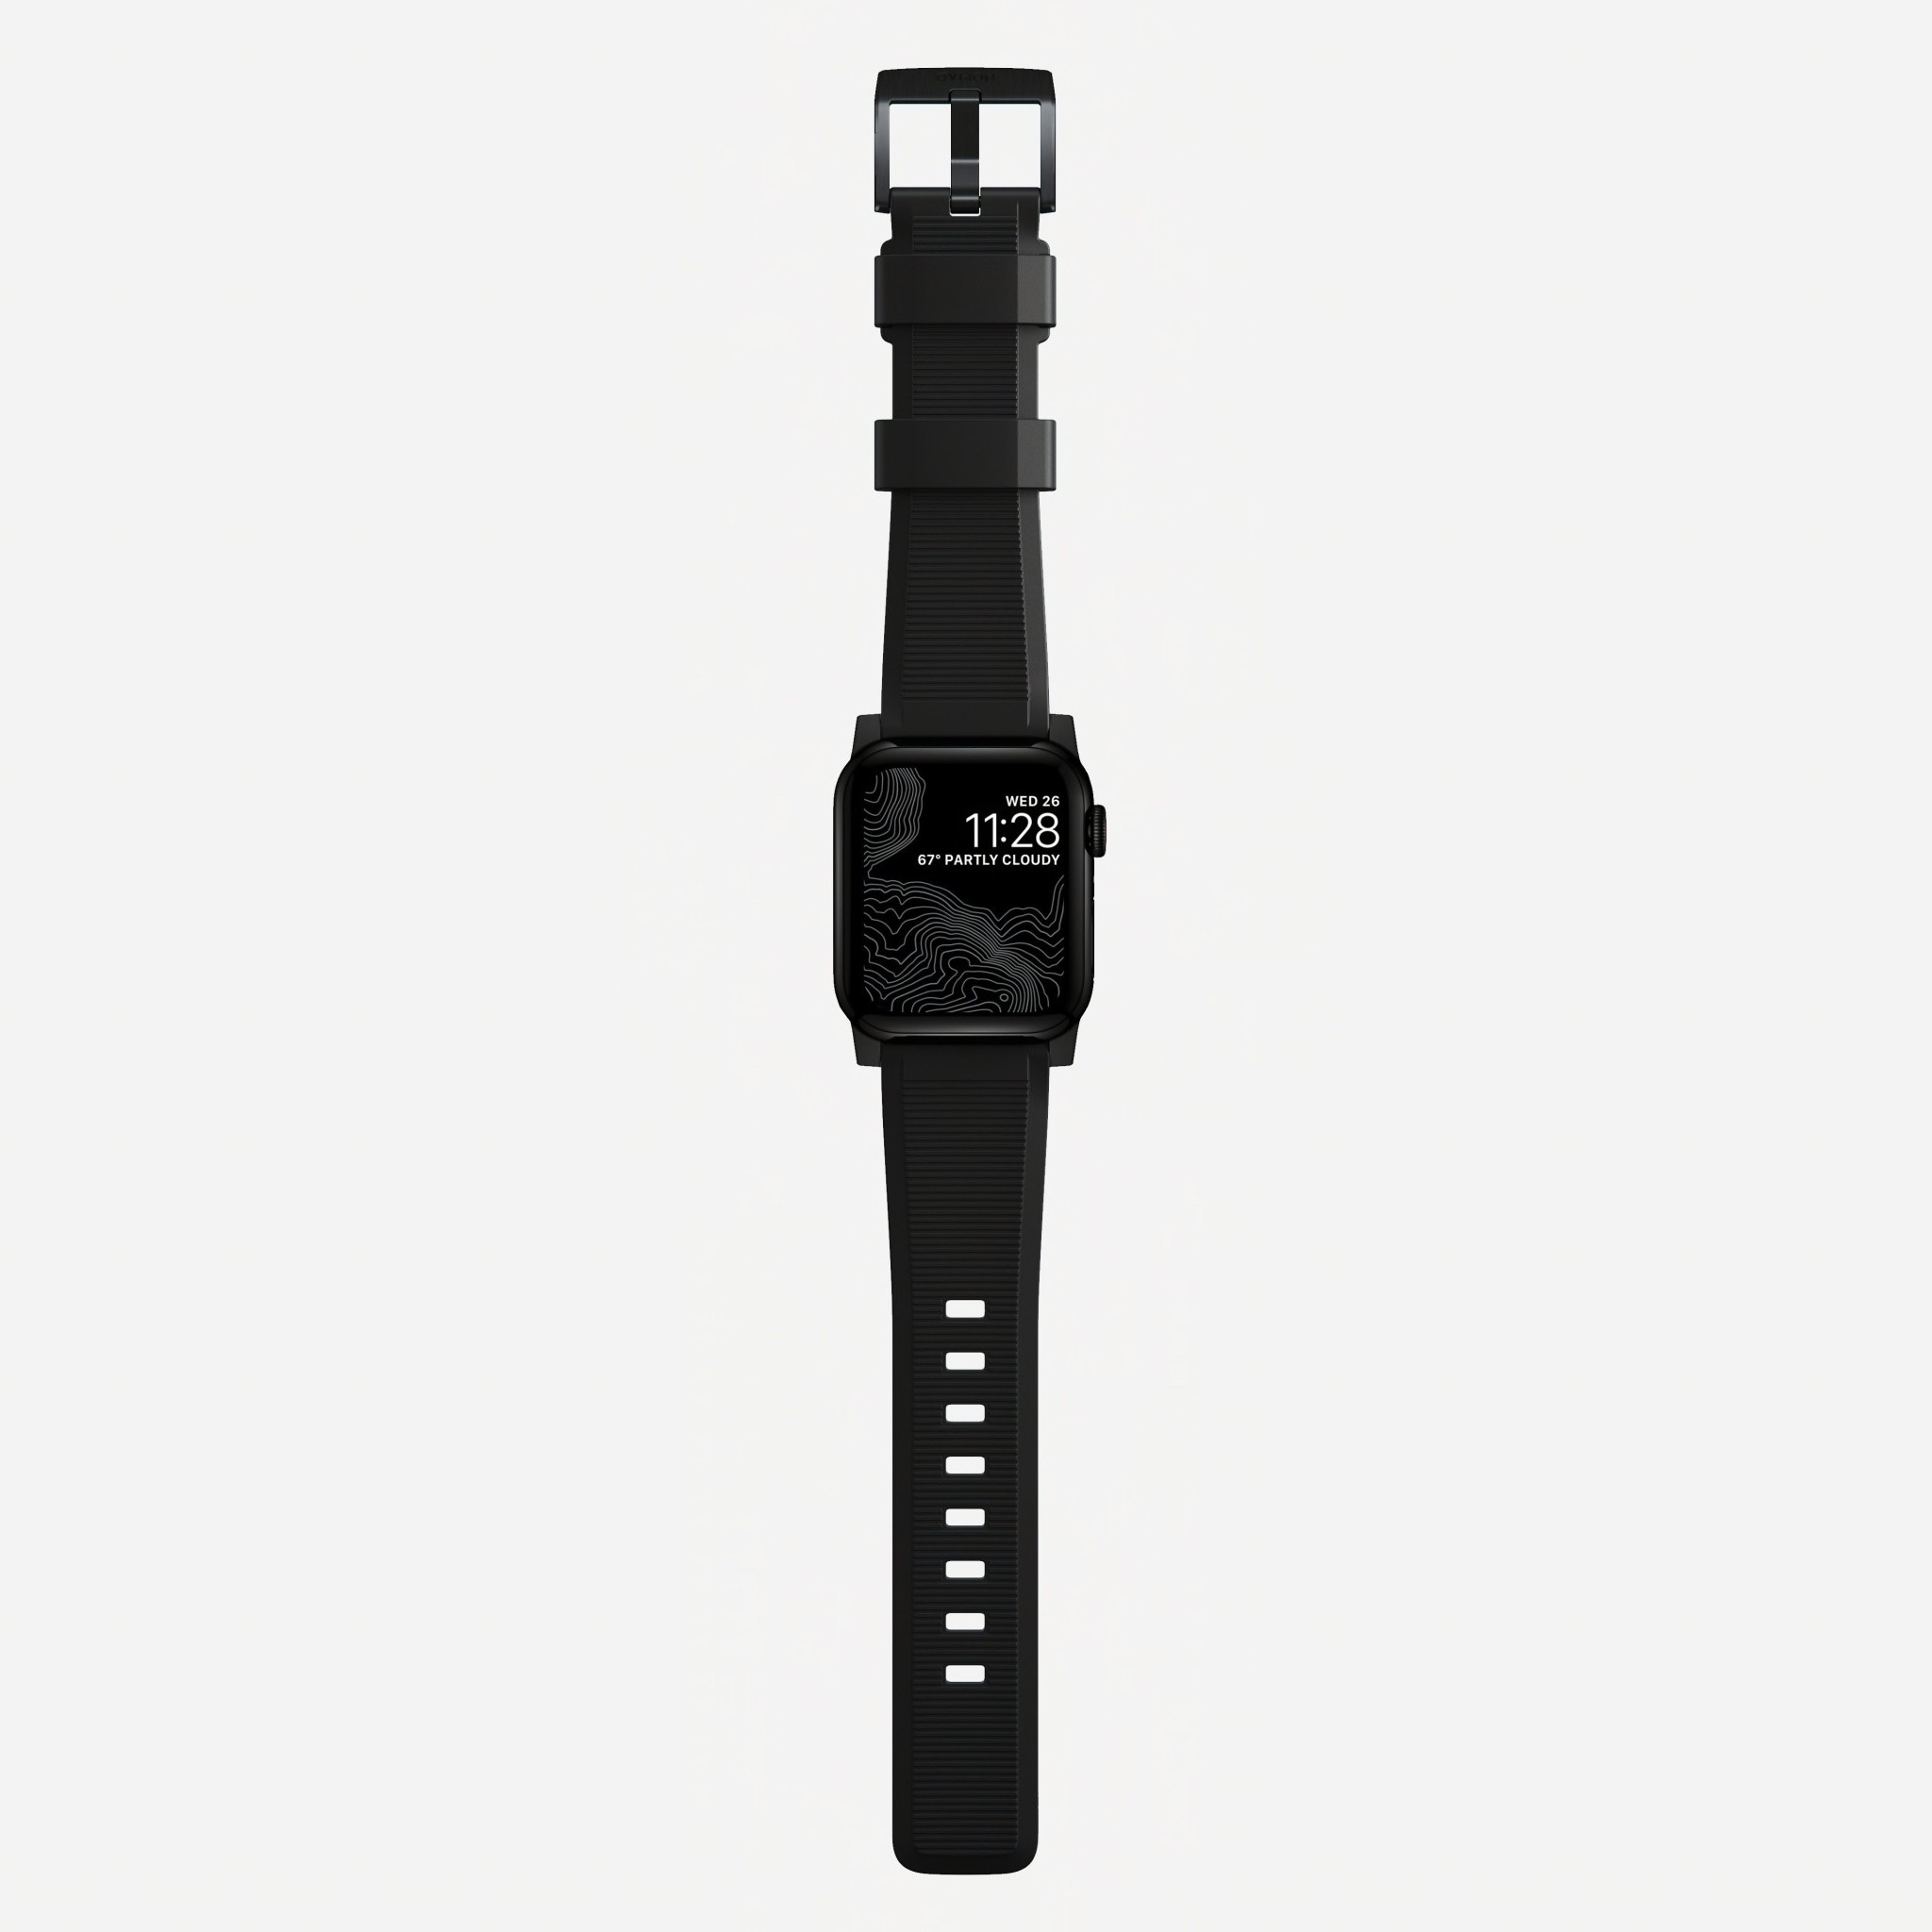 Nomad - Rugged Strap for Apple Watch 42/44mm - Black hardware, NM1A41BN00